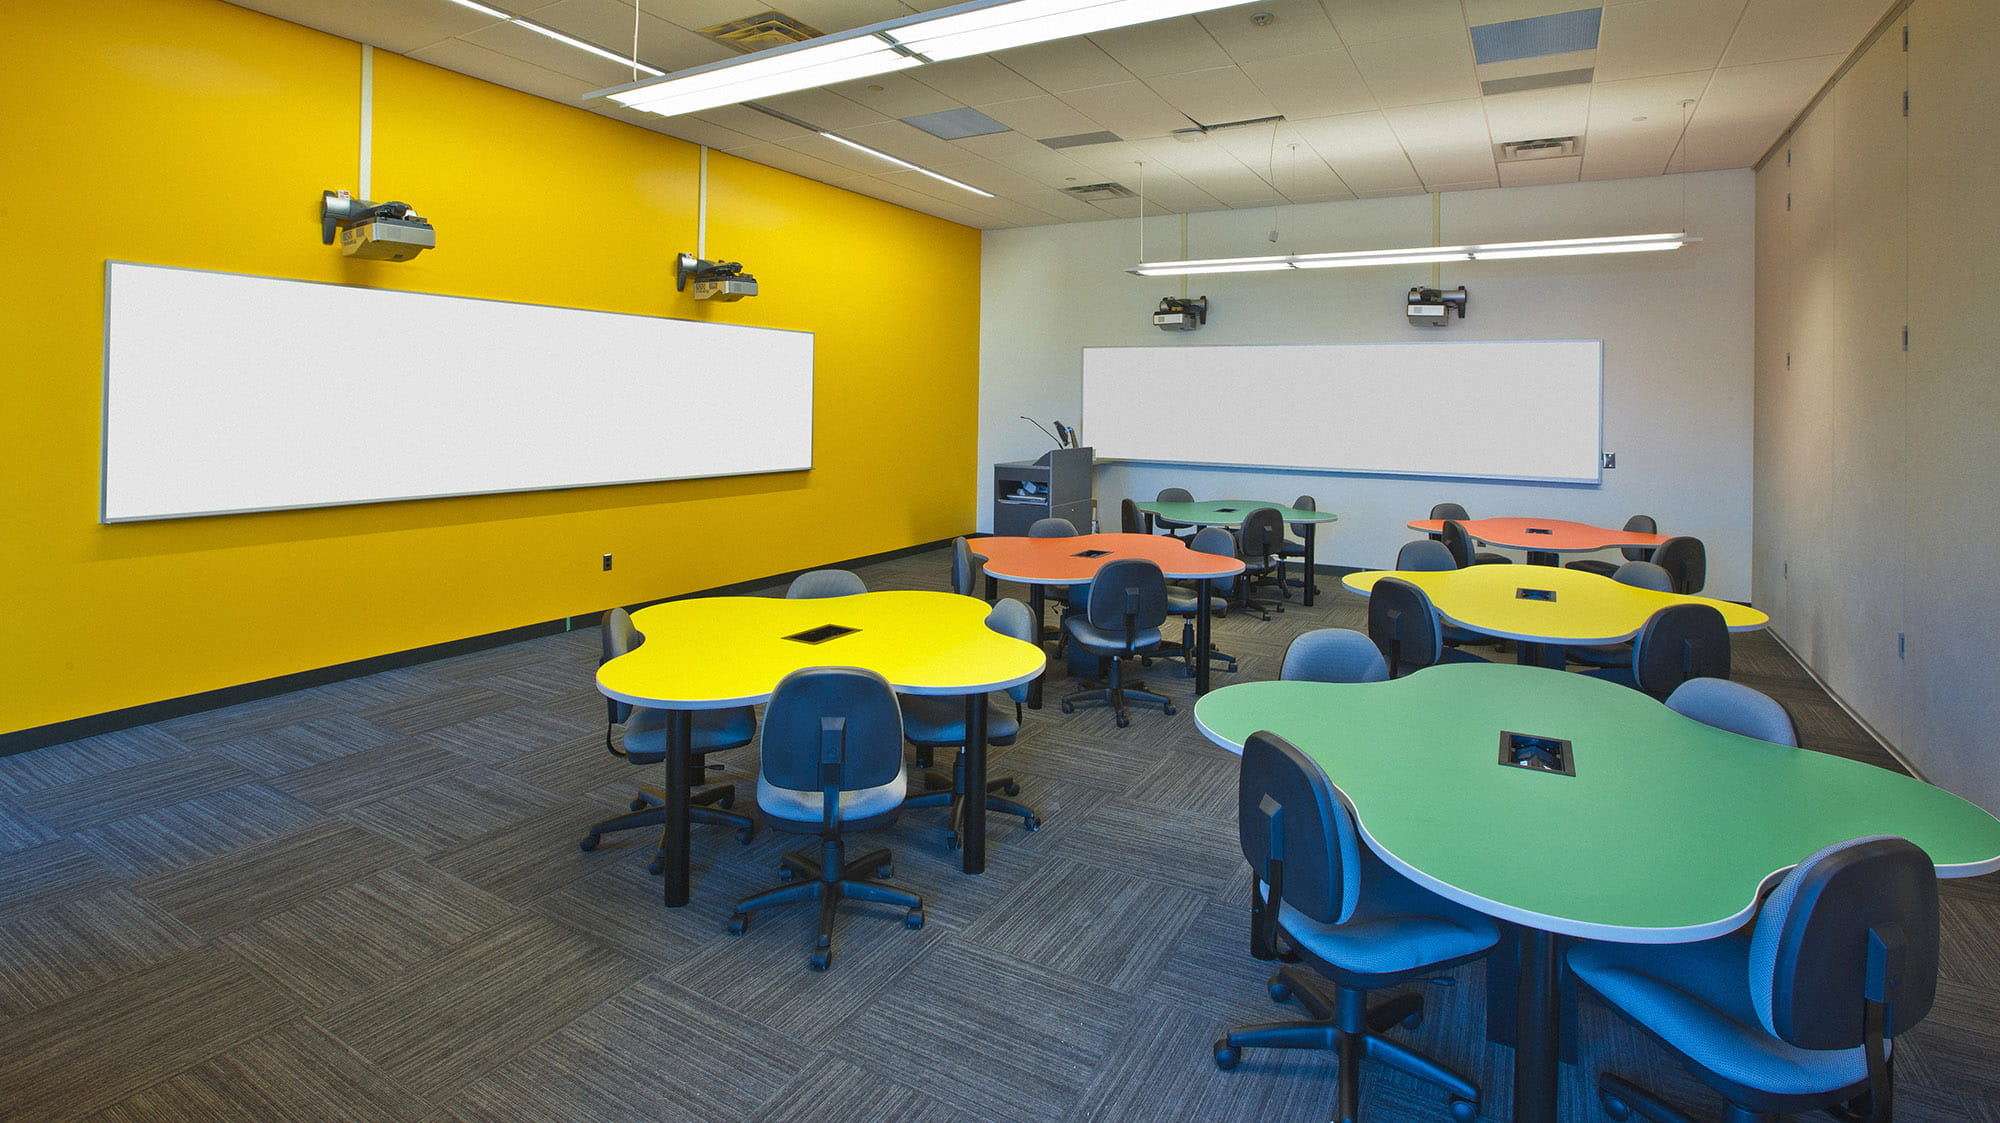 A classroom with a yellow wall, filled with multicoloured amoeba-shaped tables.